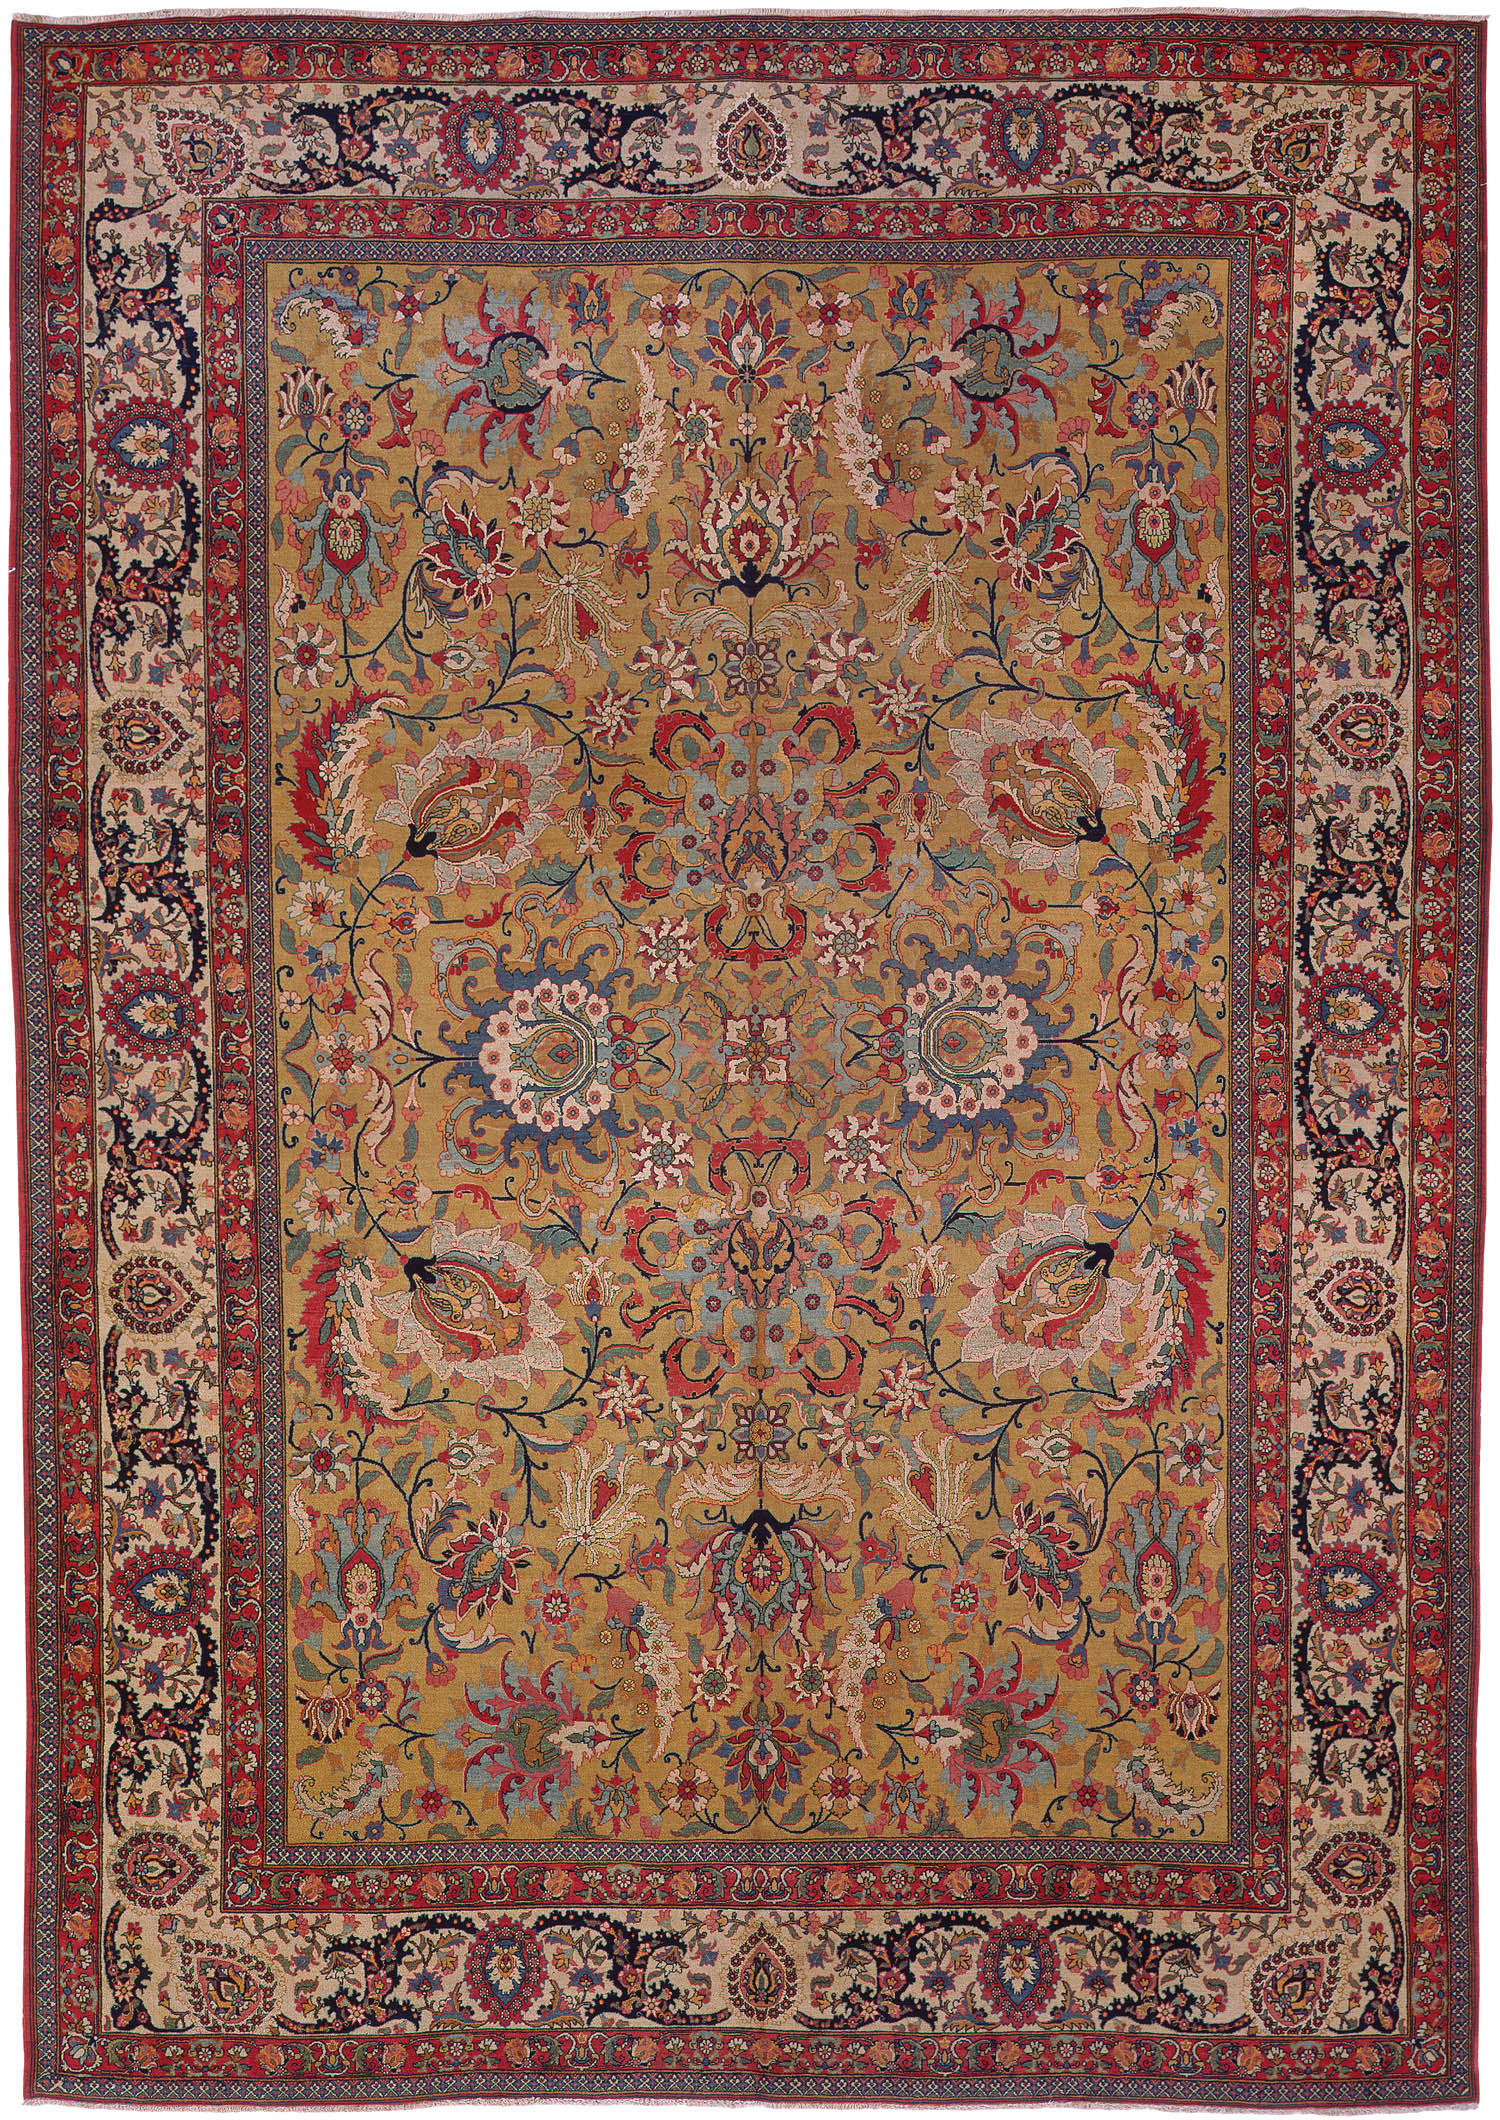 Awesome Antique Tehran Persian Carpet, Late Nineteenth CenturyThe Tradition Of The  Great Antique Persian Rugs Of